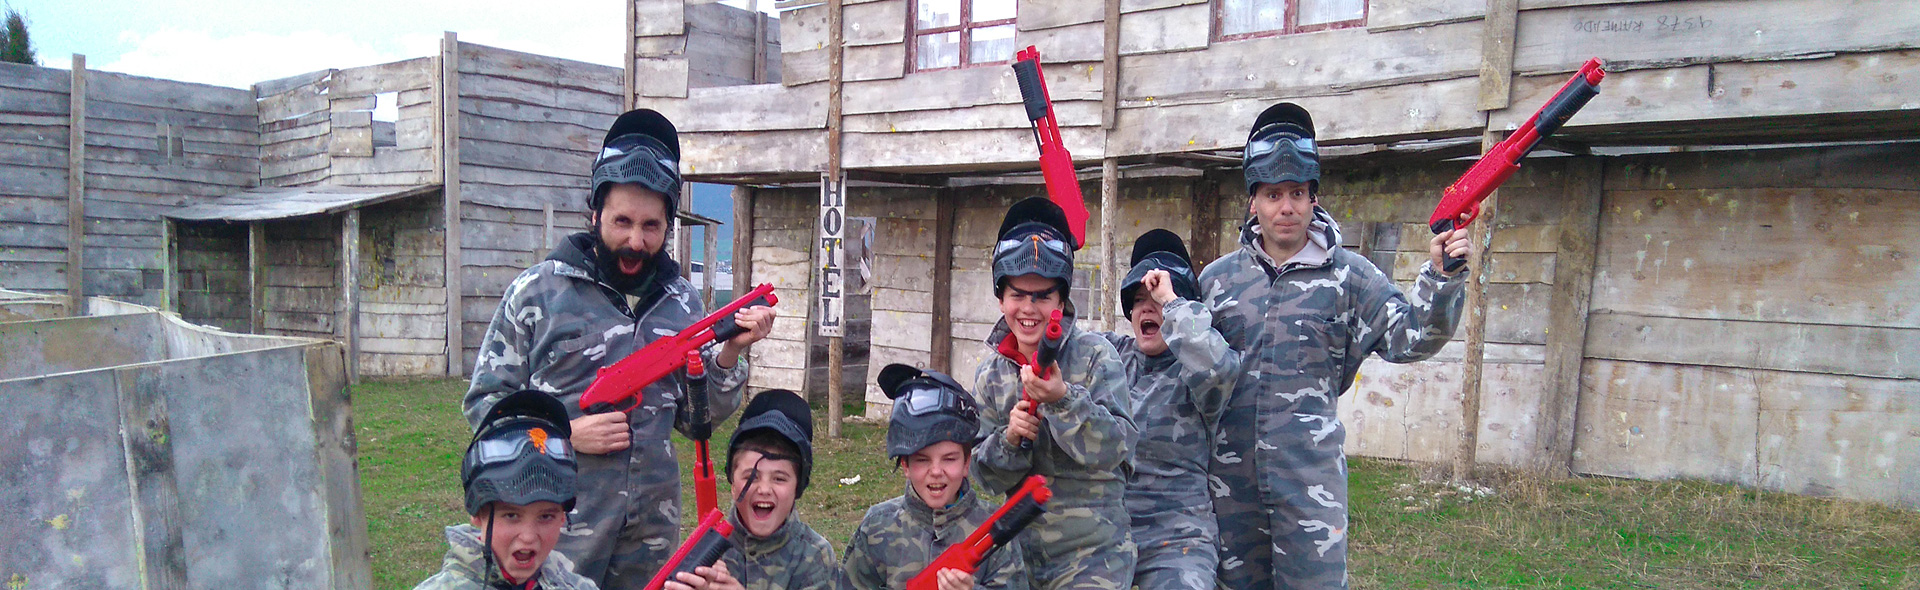 paintball para niños en Pamplona